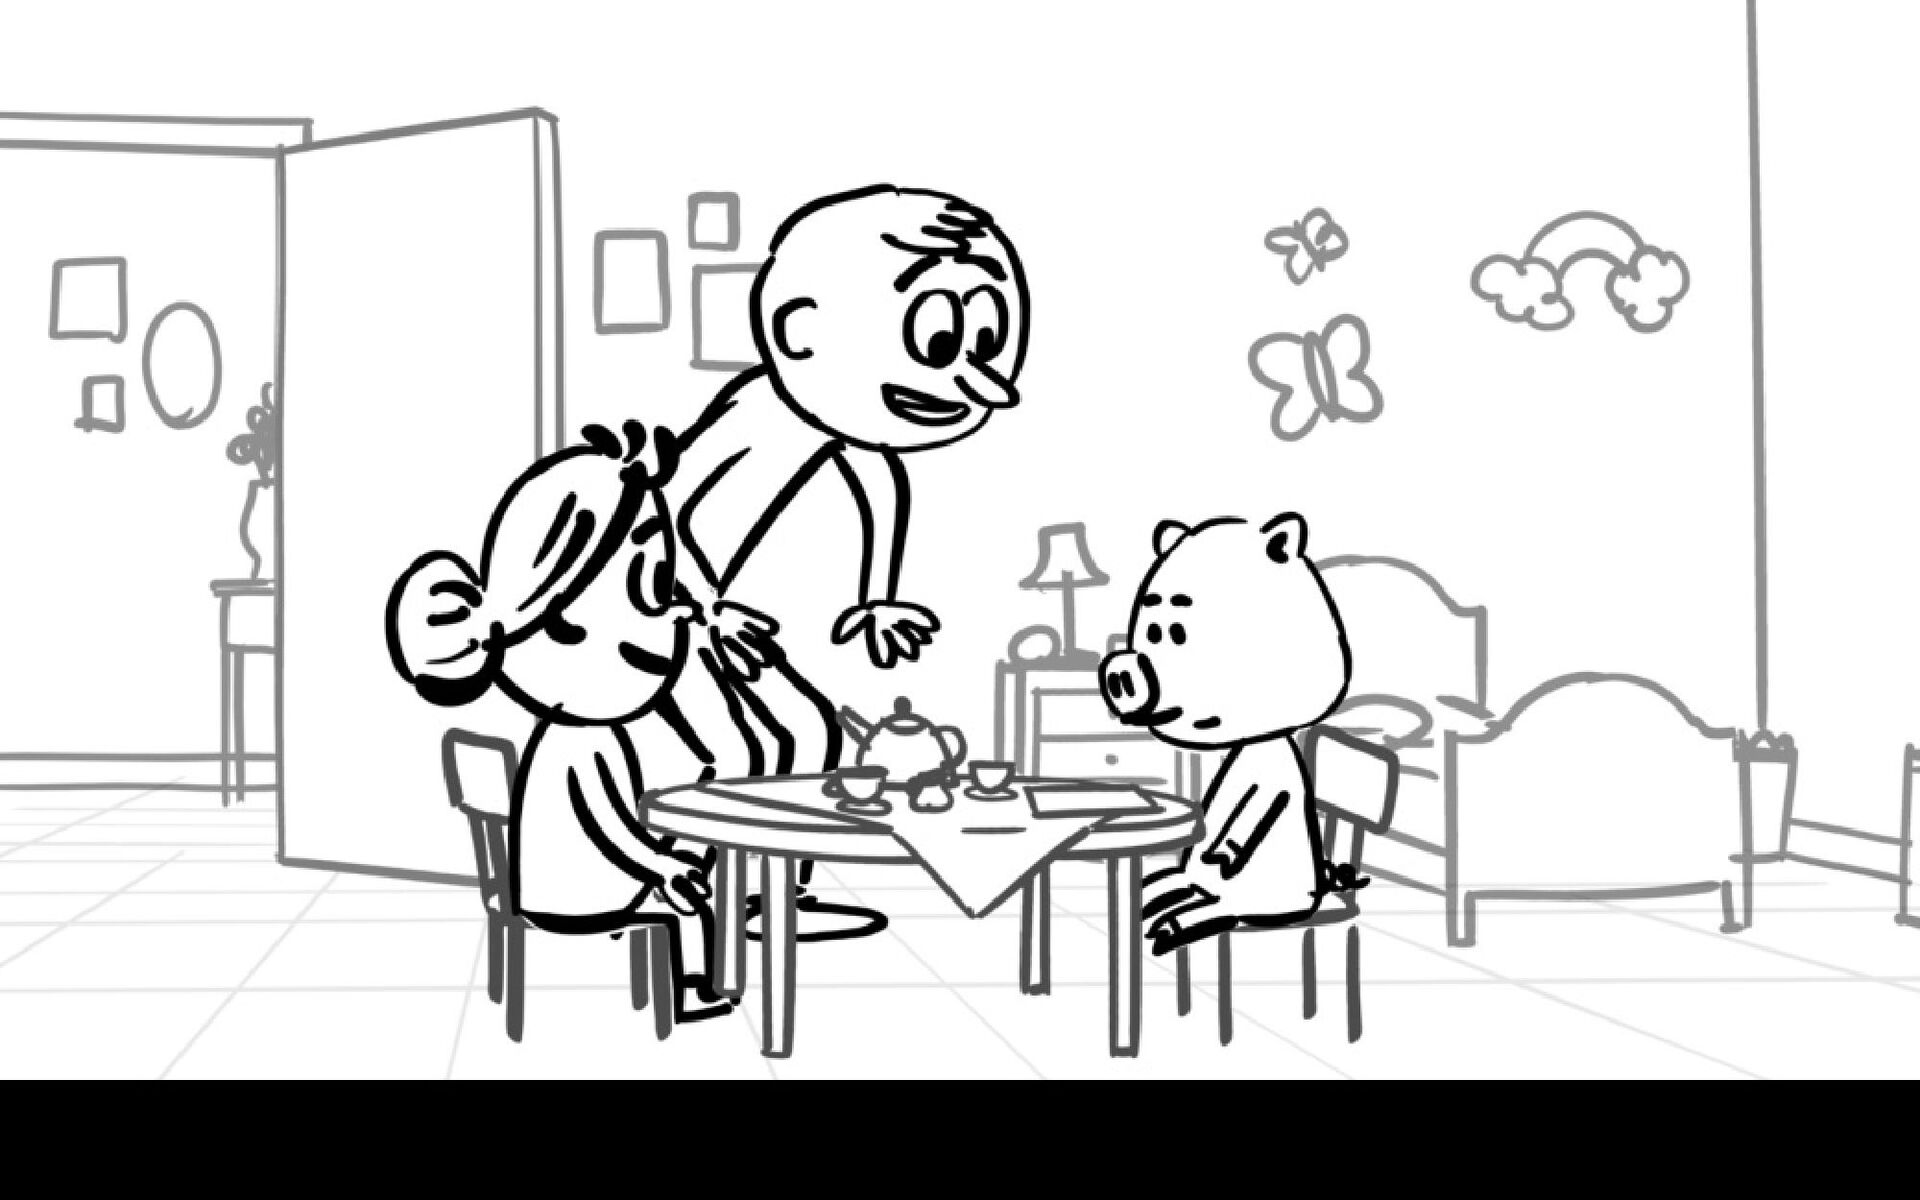 Dialog FRANK: What will you be having Mr. Pig.